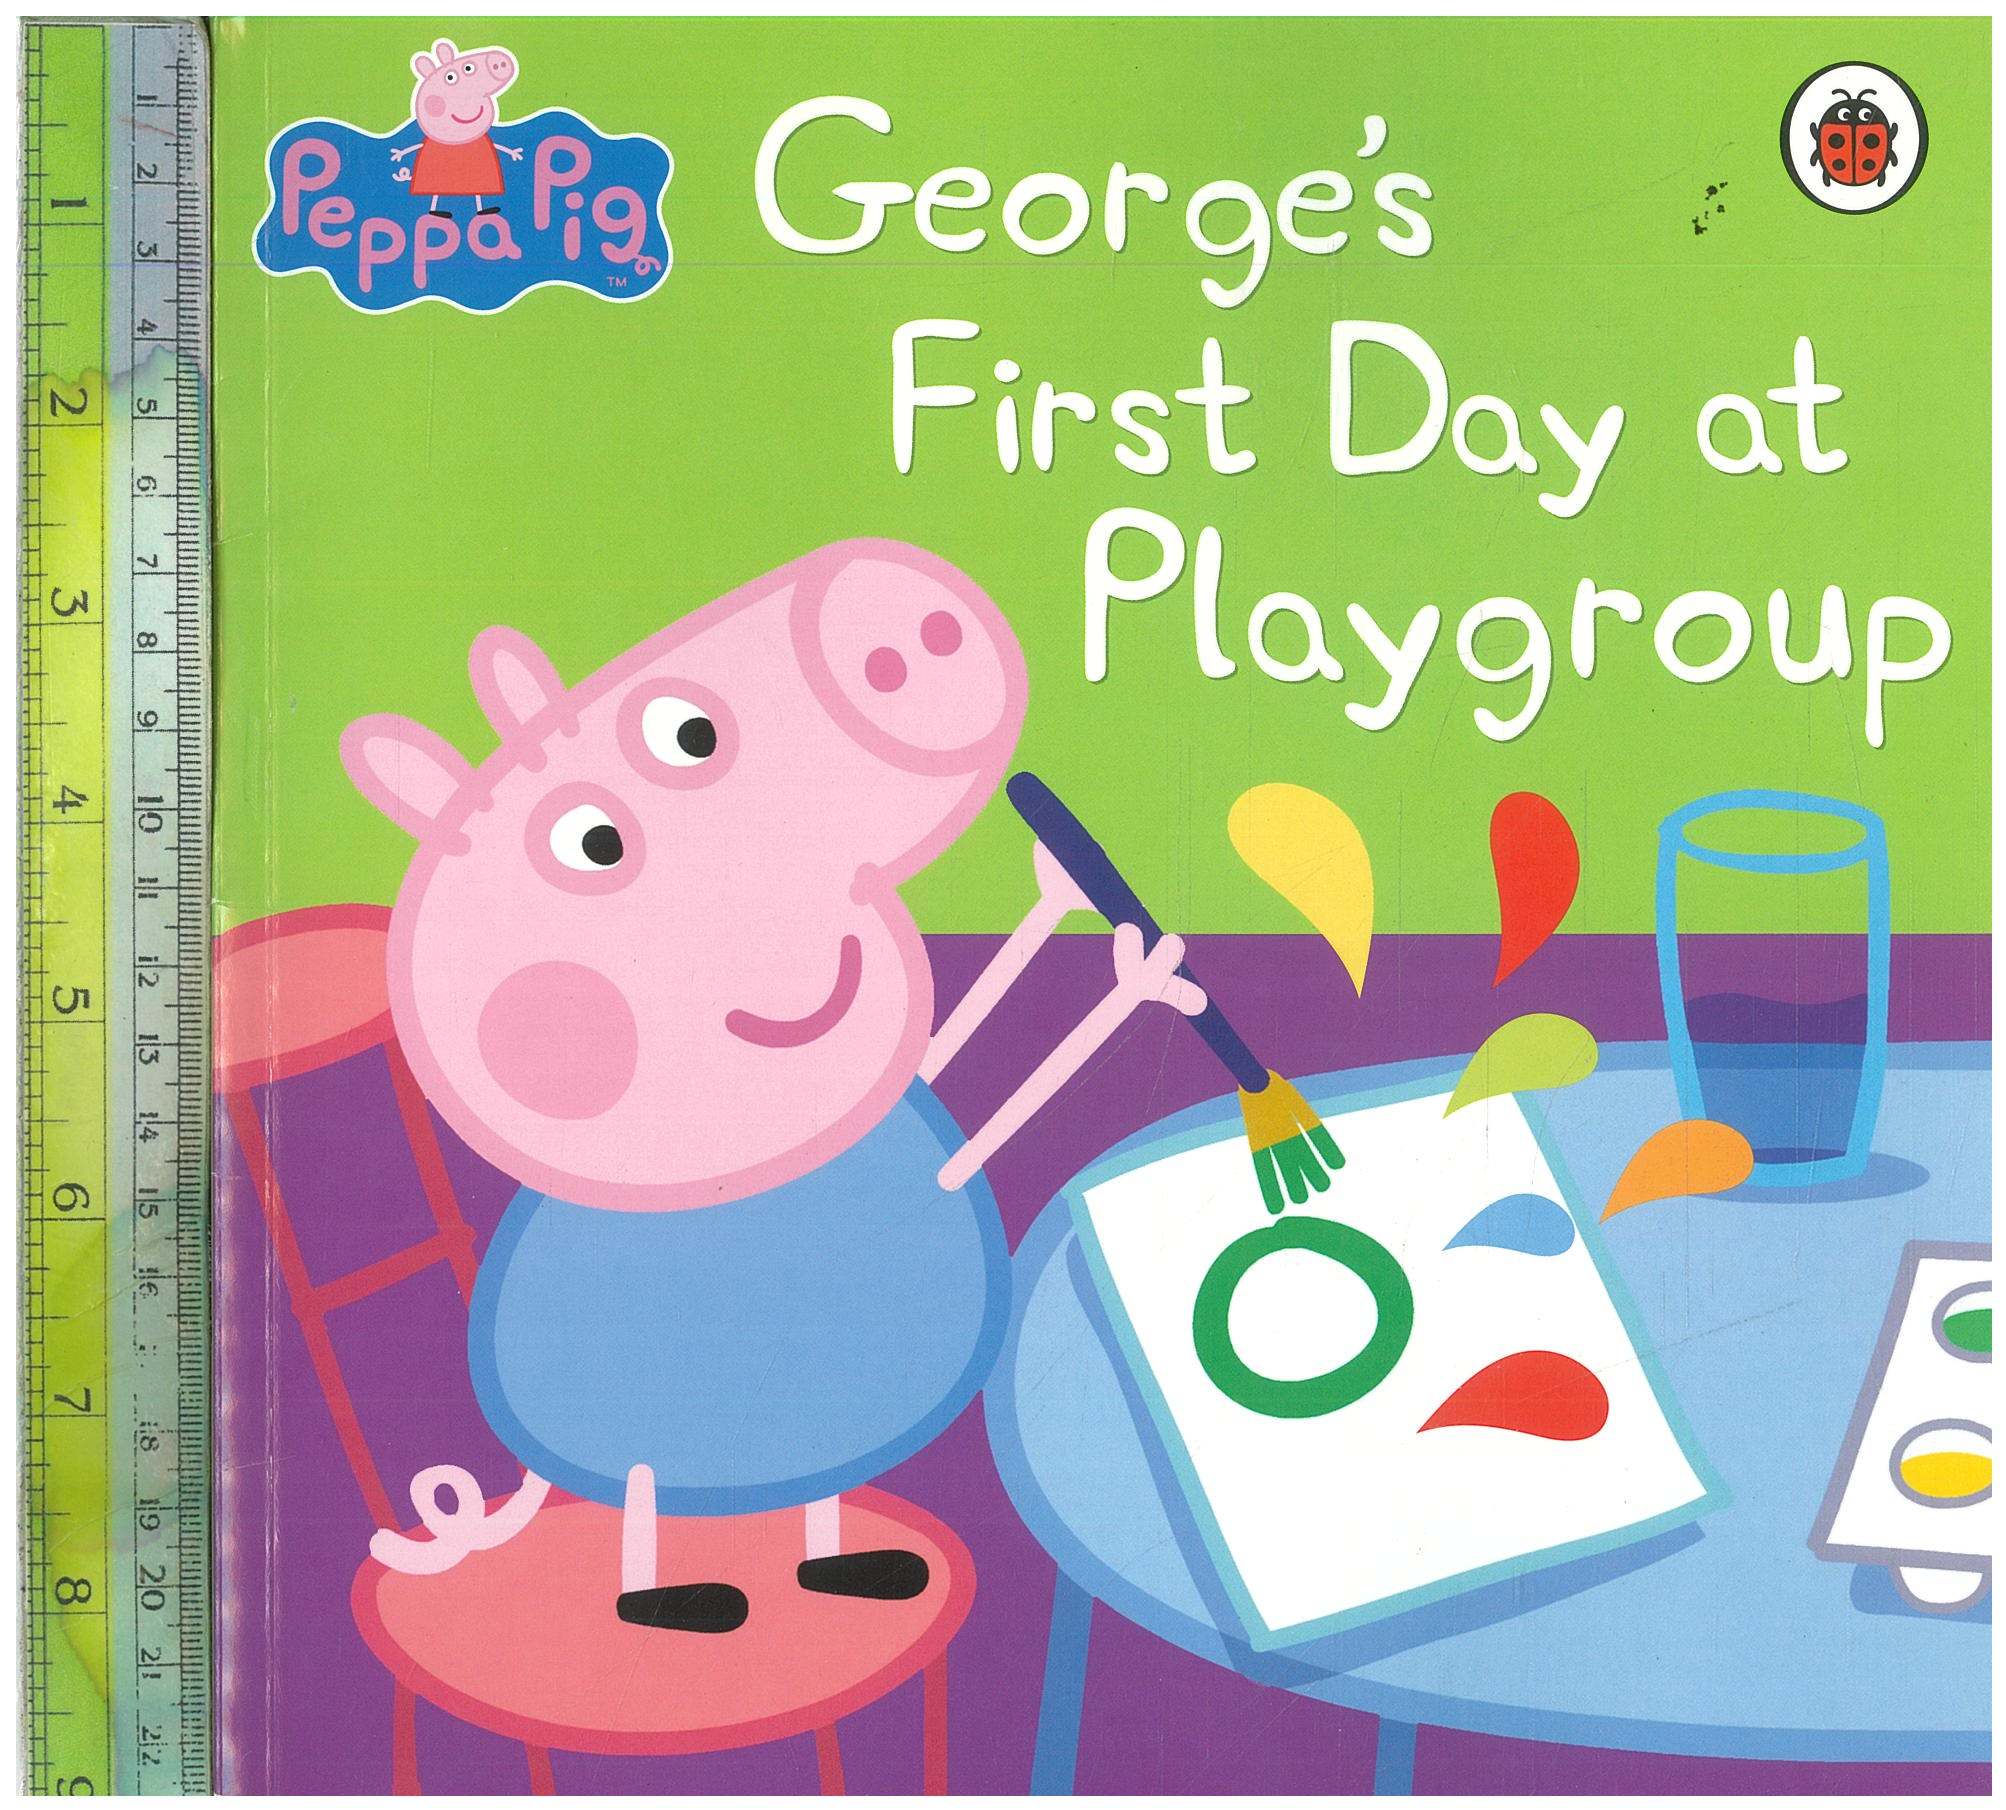 George's Frist Day at Playgroup